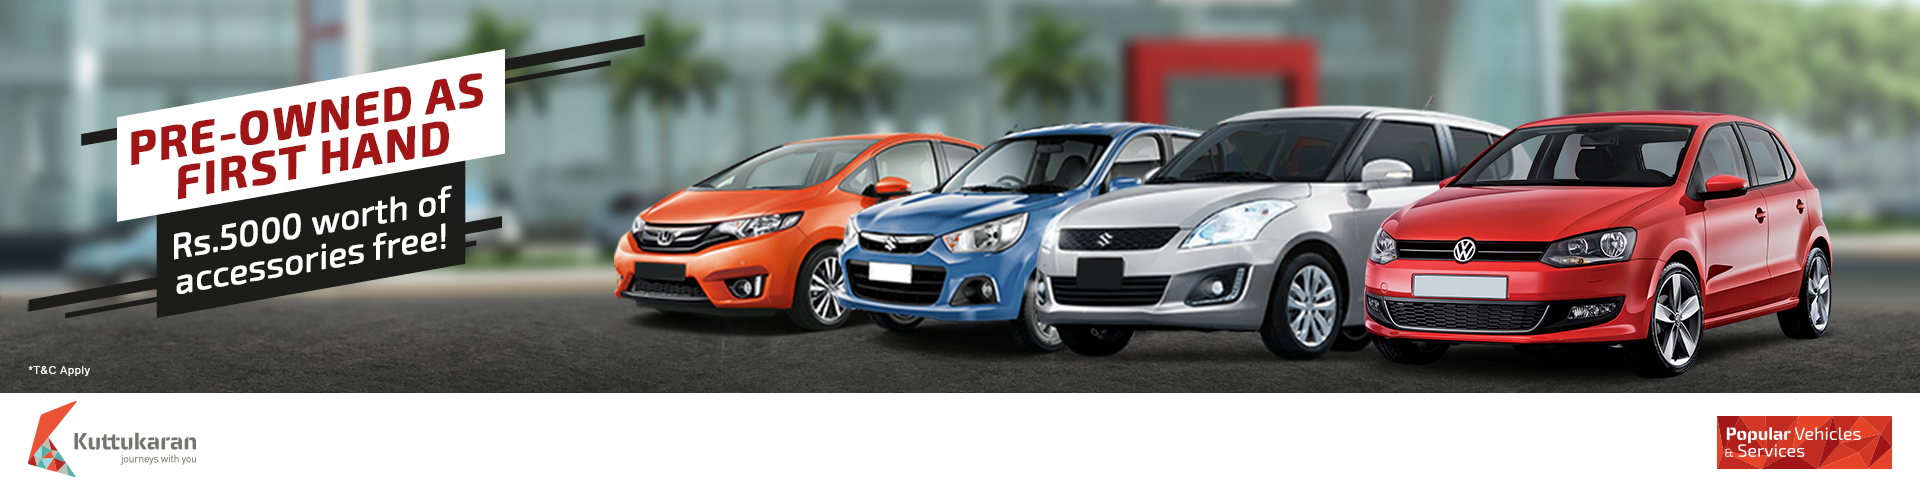 Buy Used Cars in Kochi, Trivandrum, Calicut, Thrissur